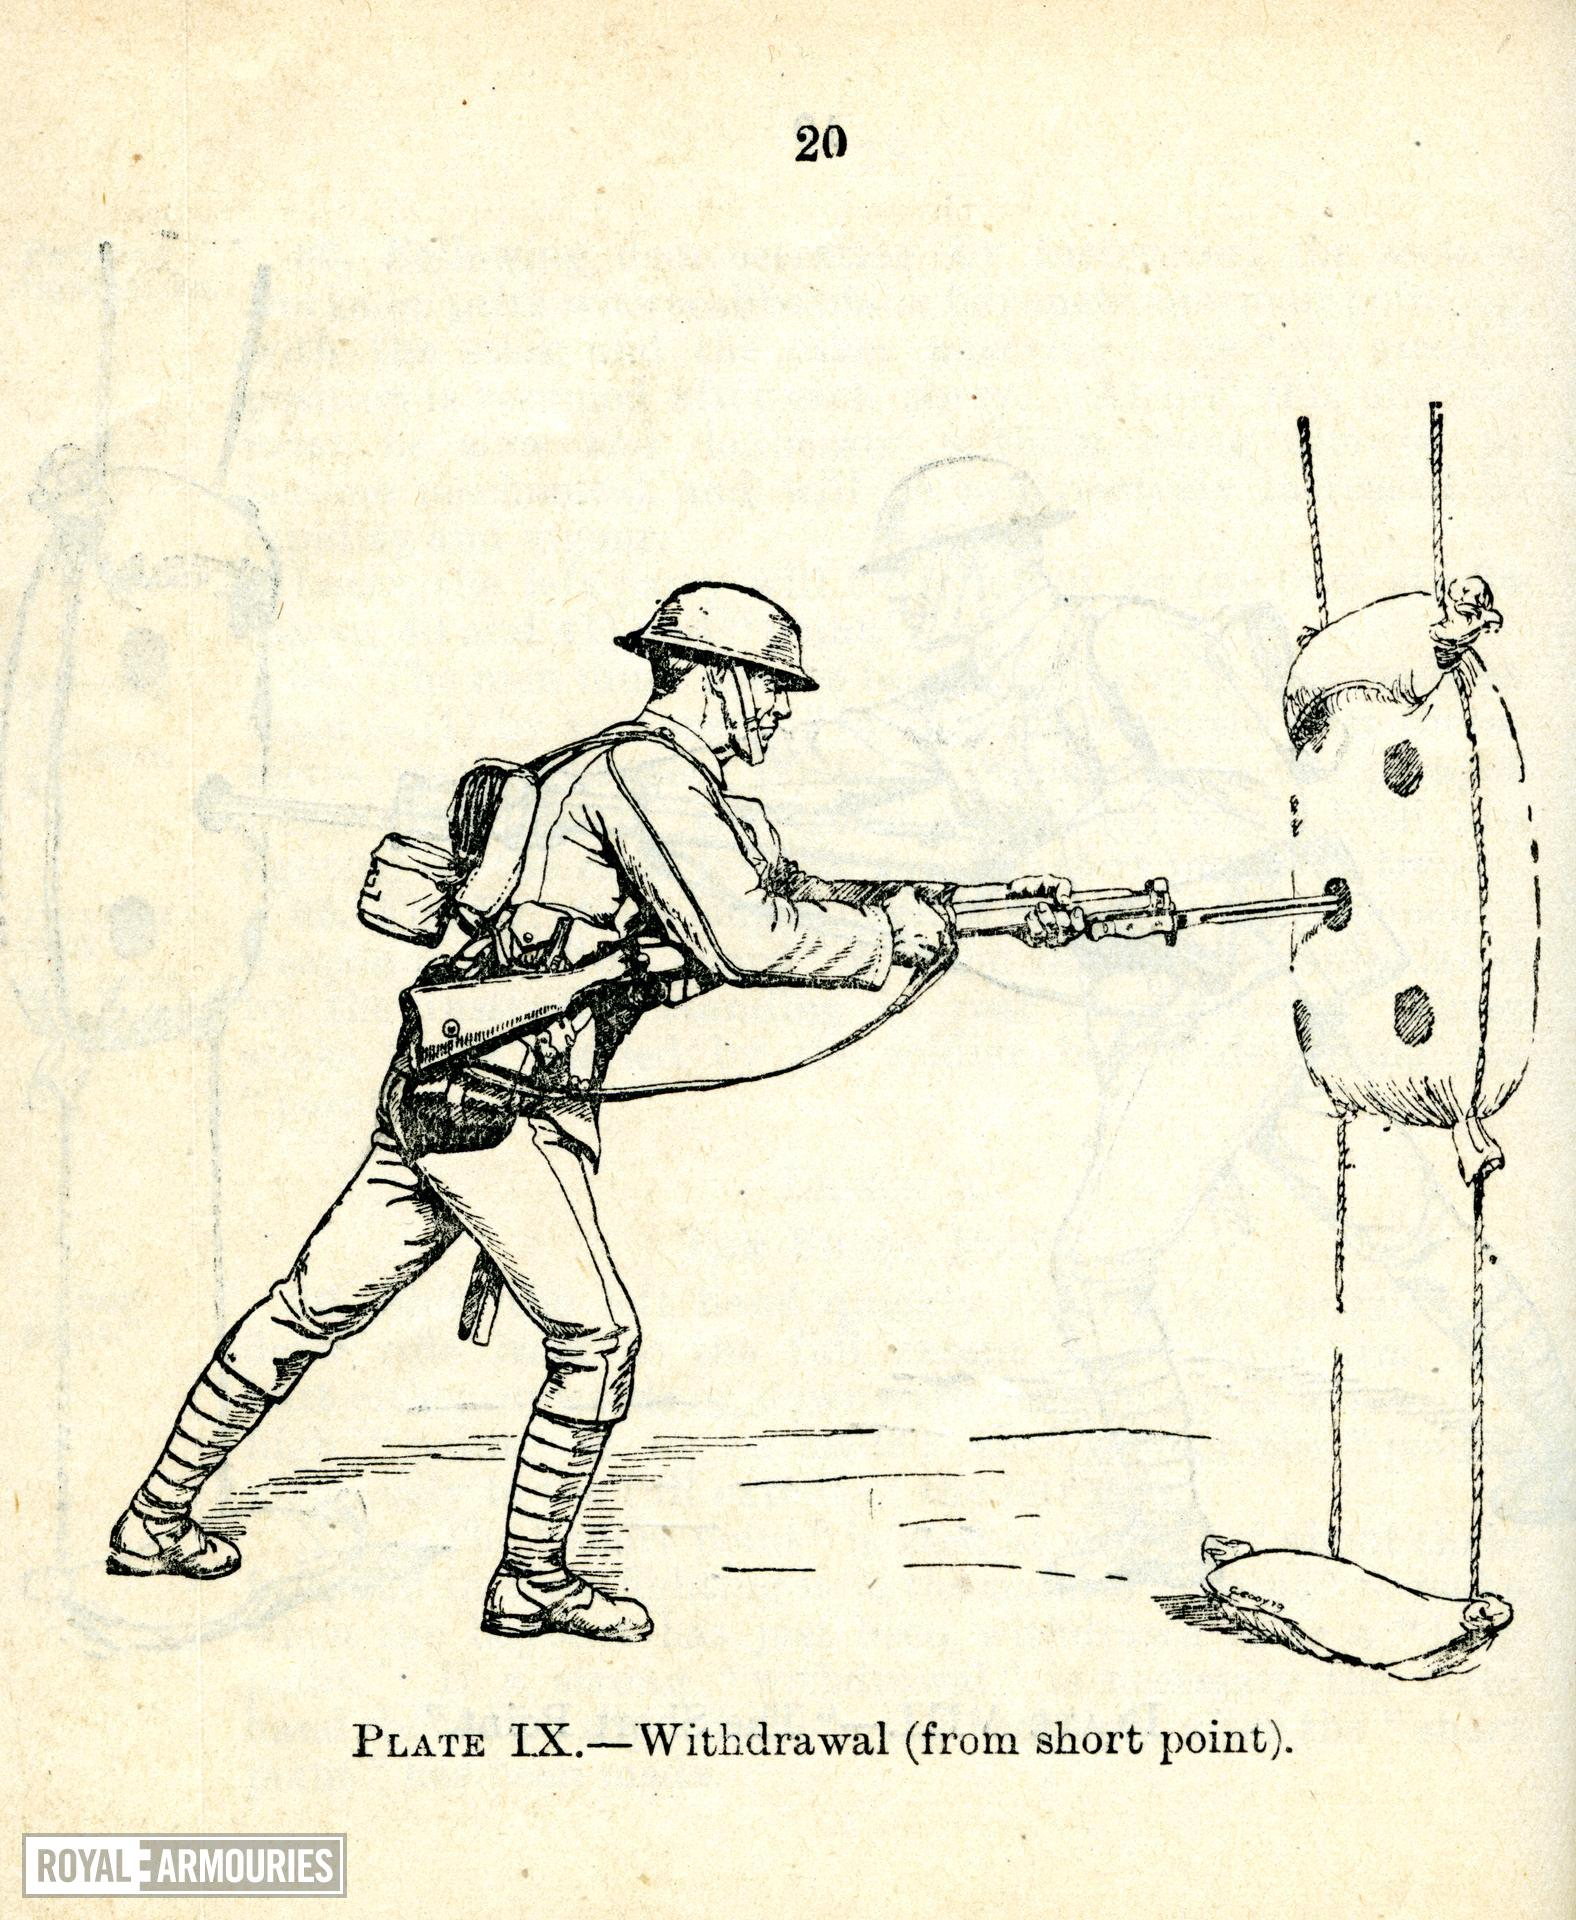 Plate IX showing ' Withdrawal  (from short point),' taken from the title, ' Musketry regulations. 1909, Bayonet Training, July 1919, London, Britain. Printed by HMSO. (RAL.22410)